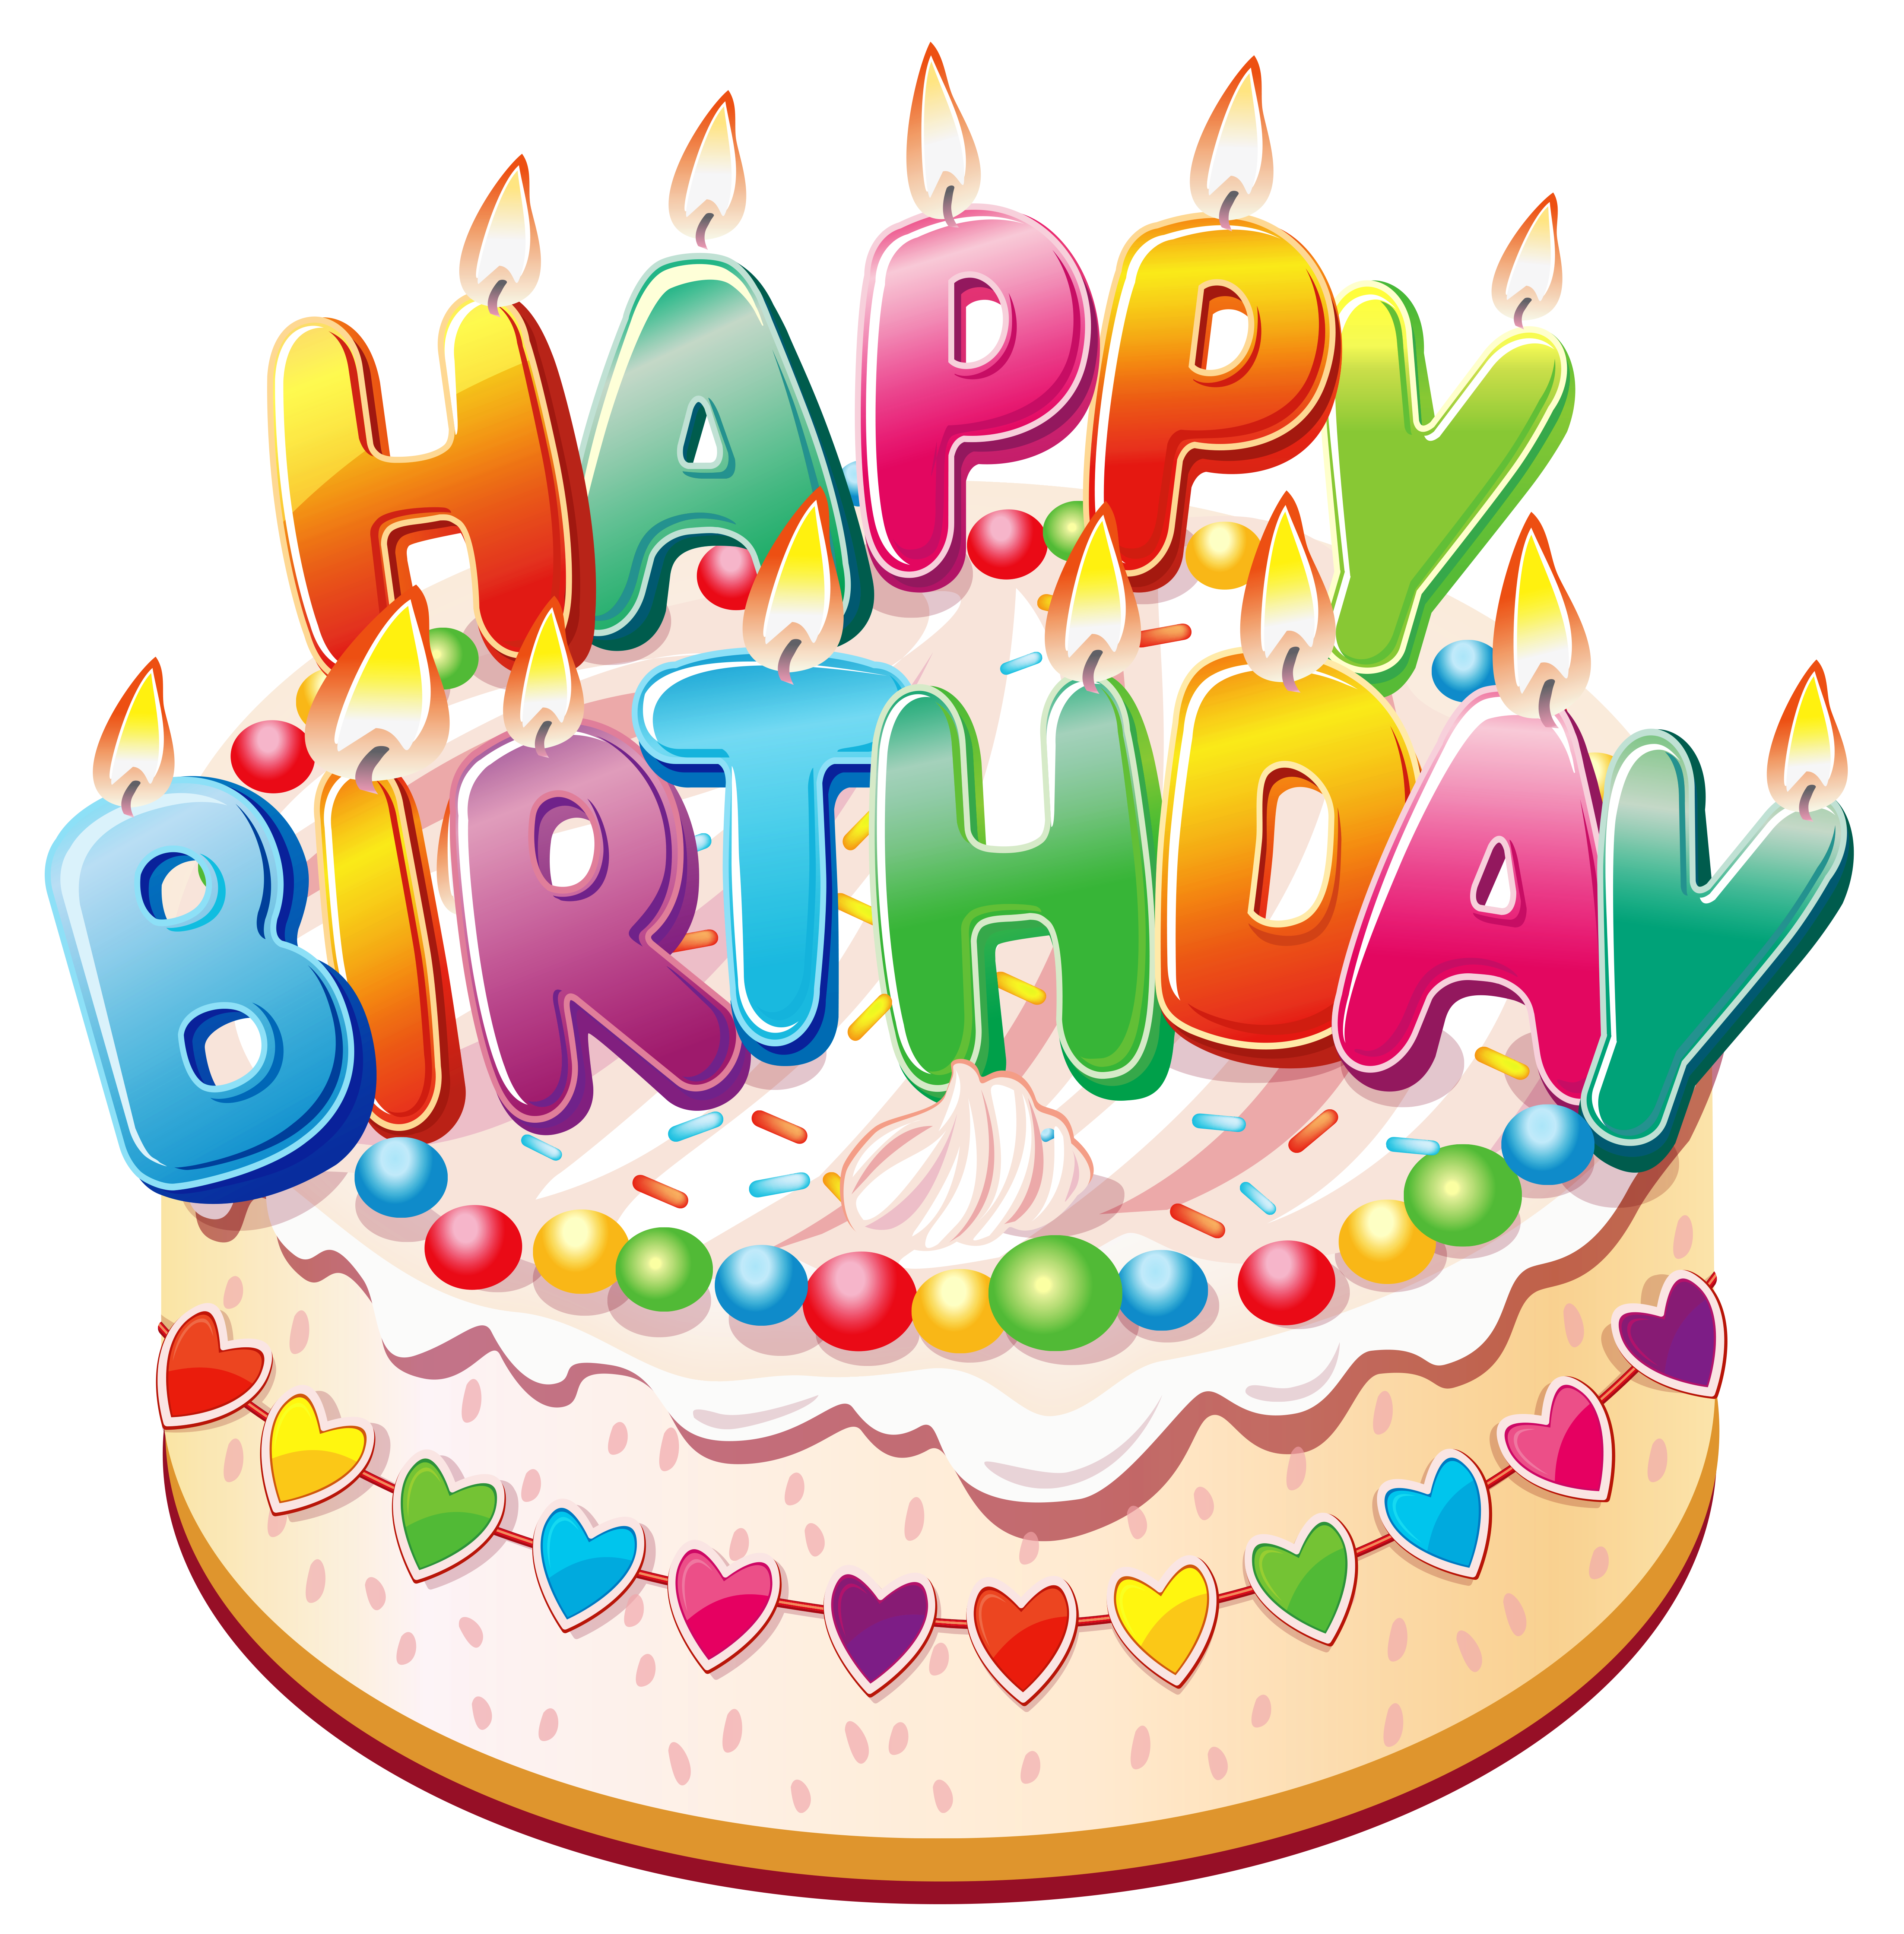 Happy birthday cake clipart - ClipartFest freeuse stock